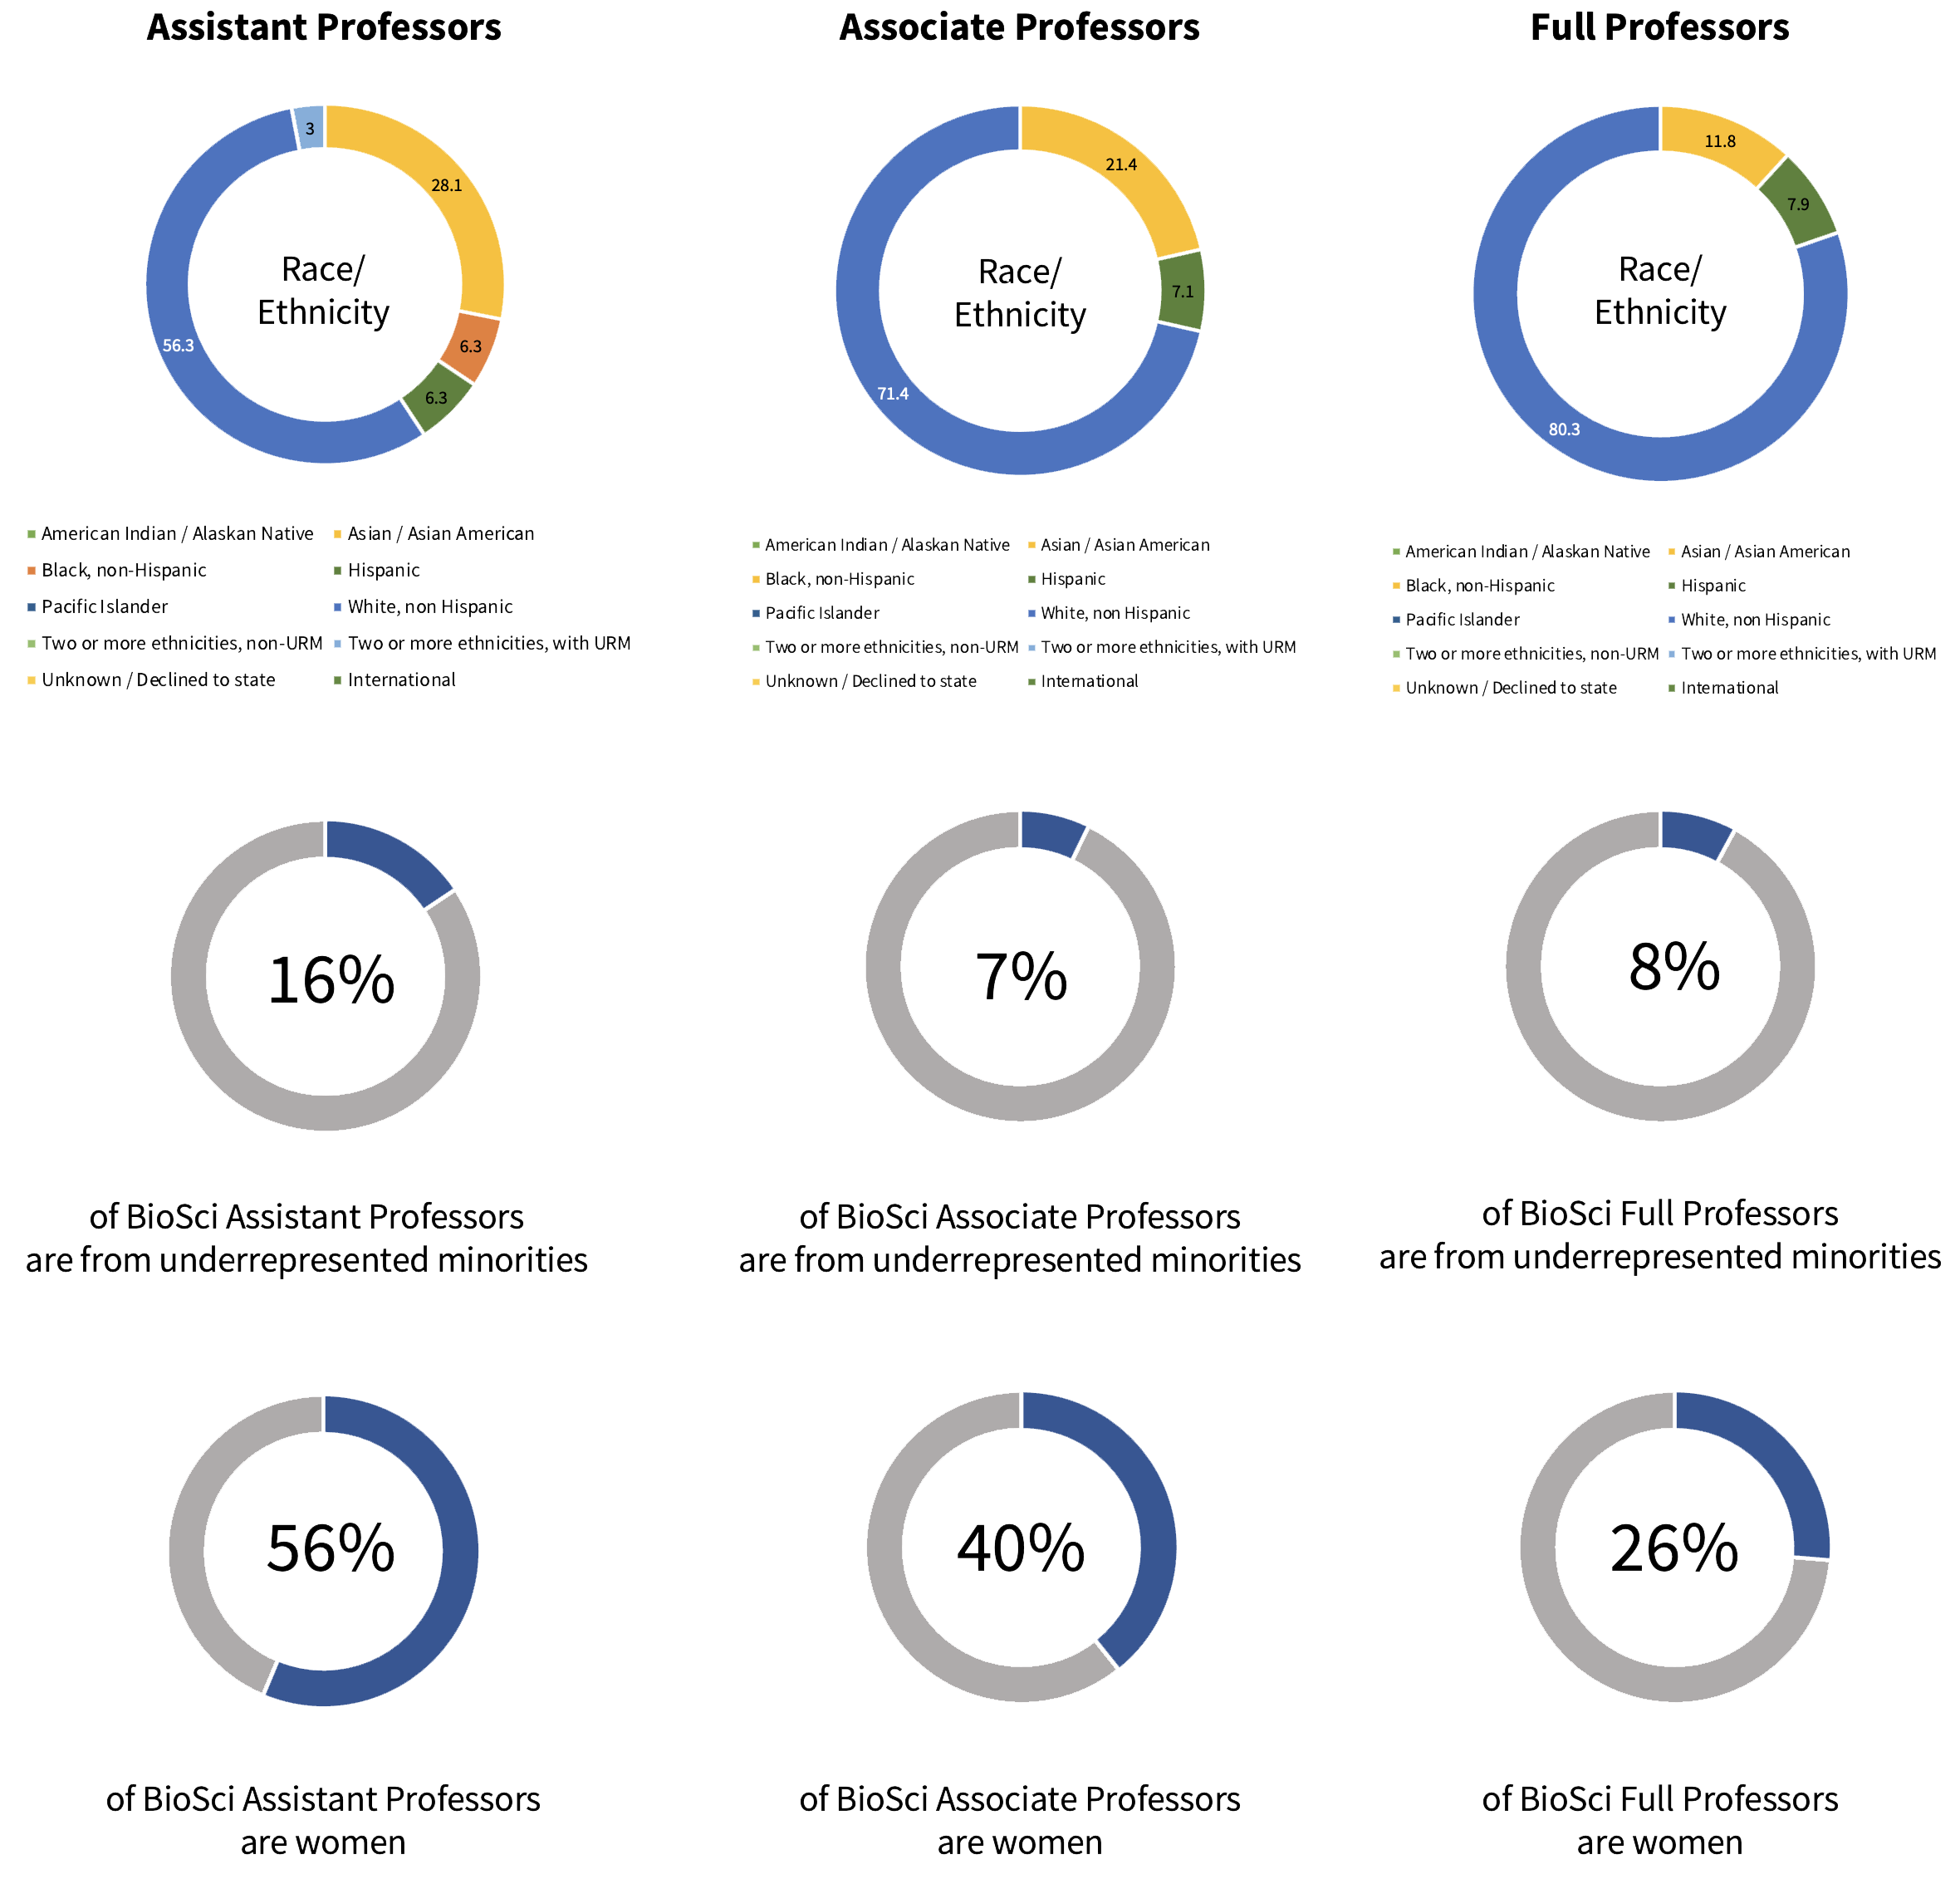 Pie chart showing statistics for Faculty representation at UCI BioSci